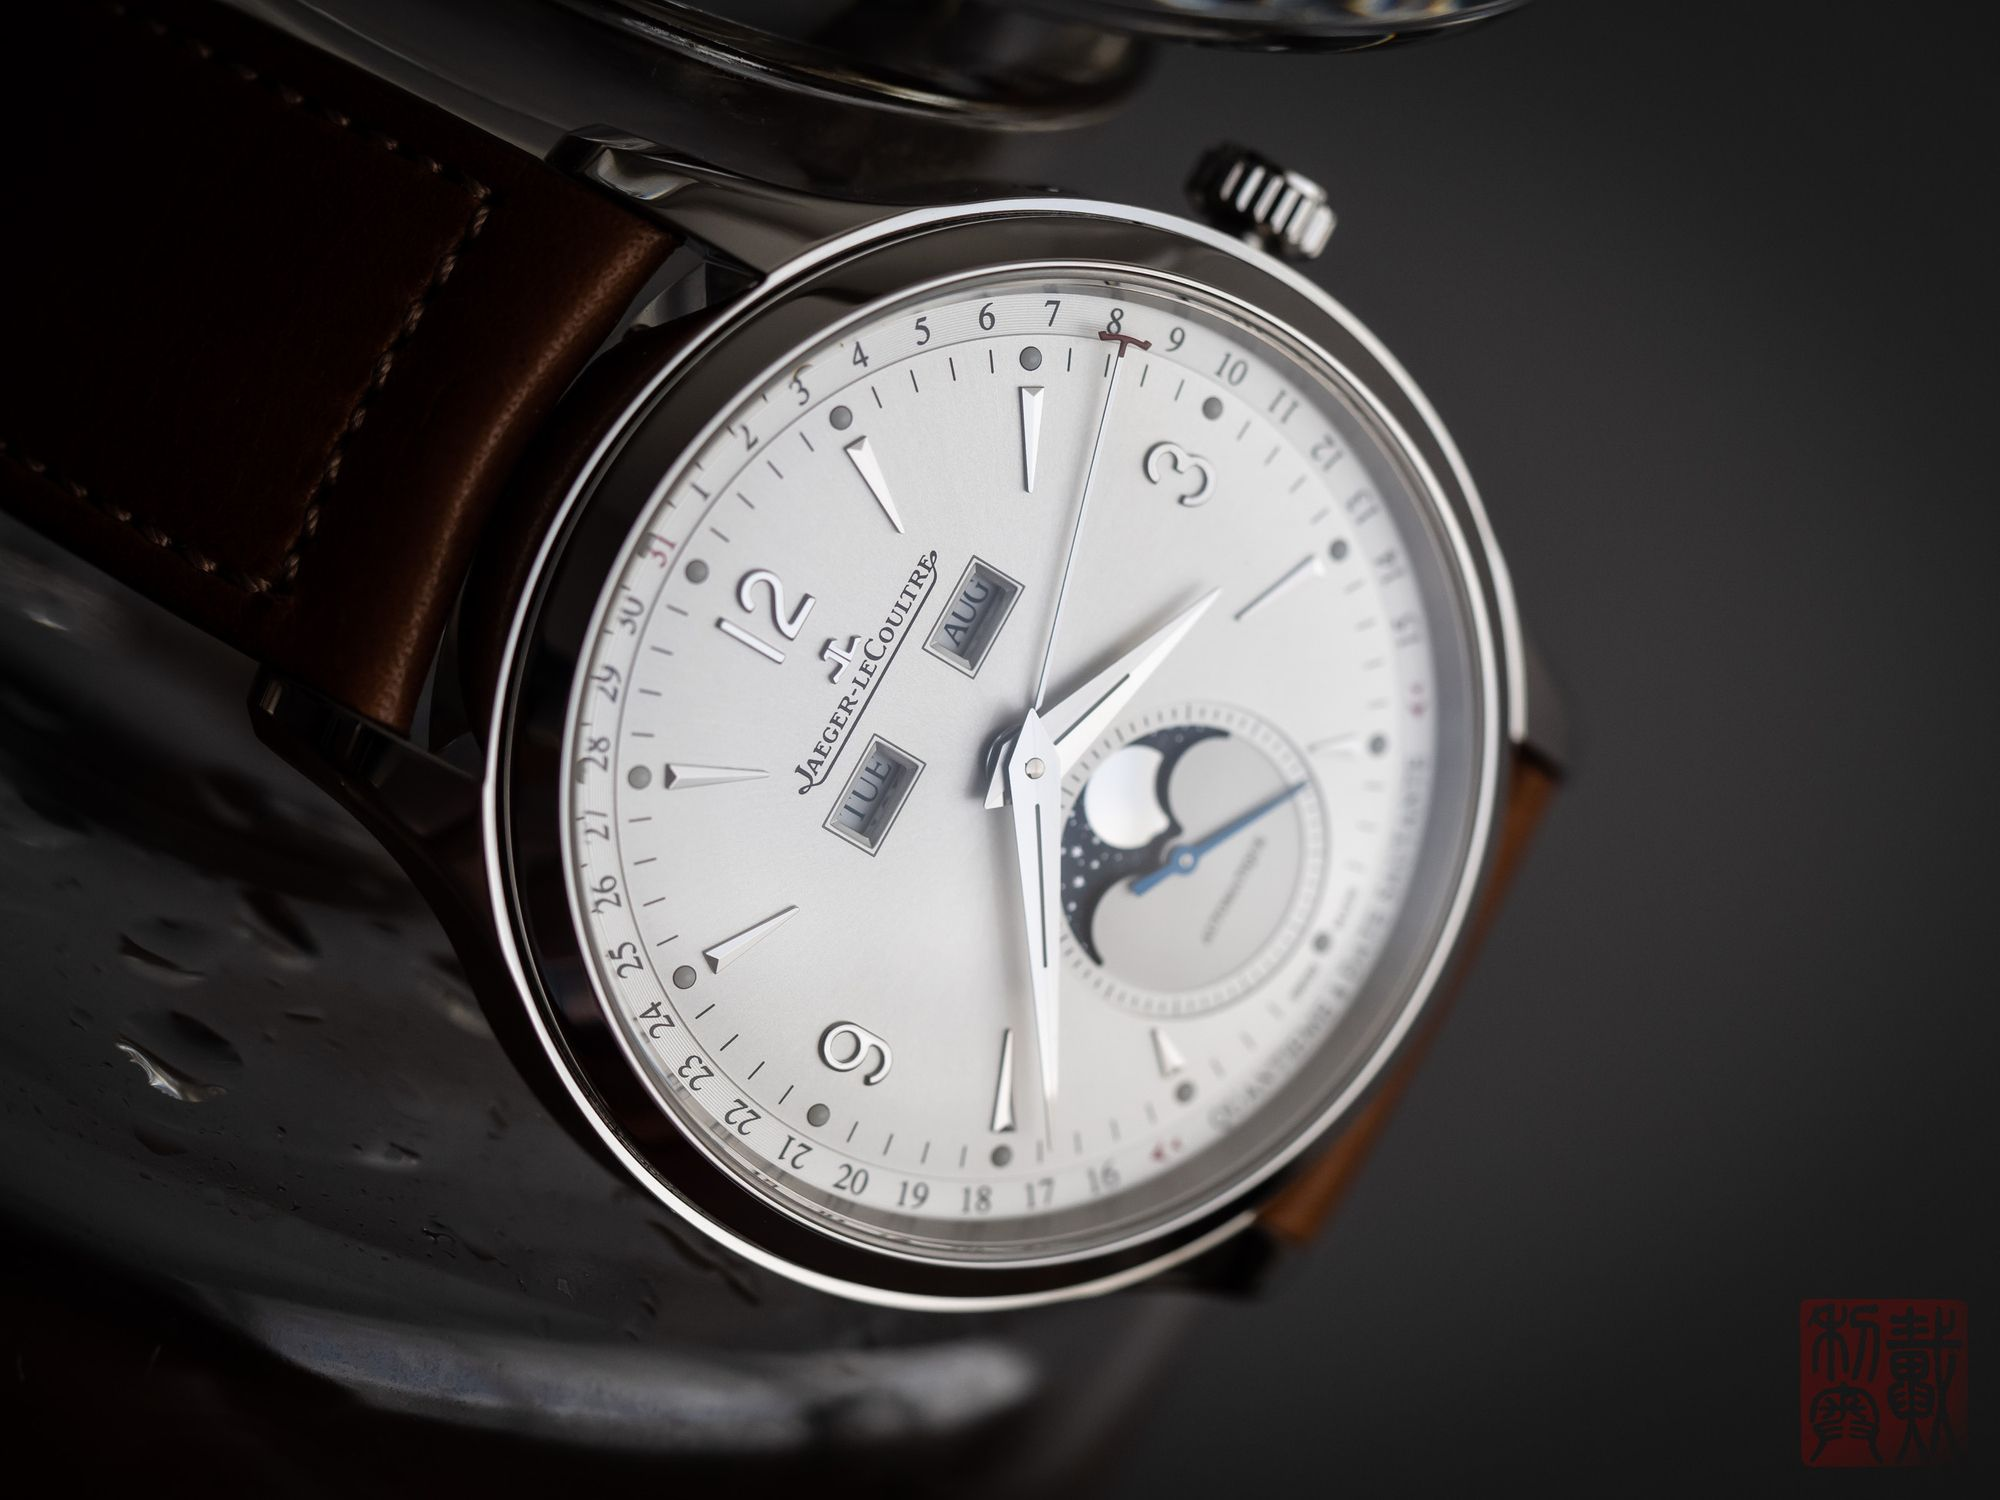 One afternoon with the The Master Control by Jaeger-LeCoultre